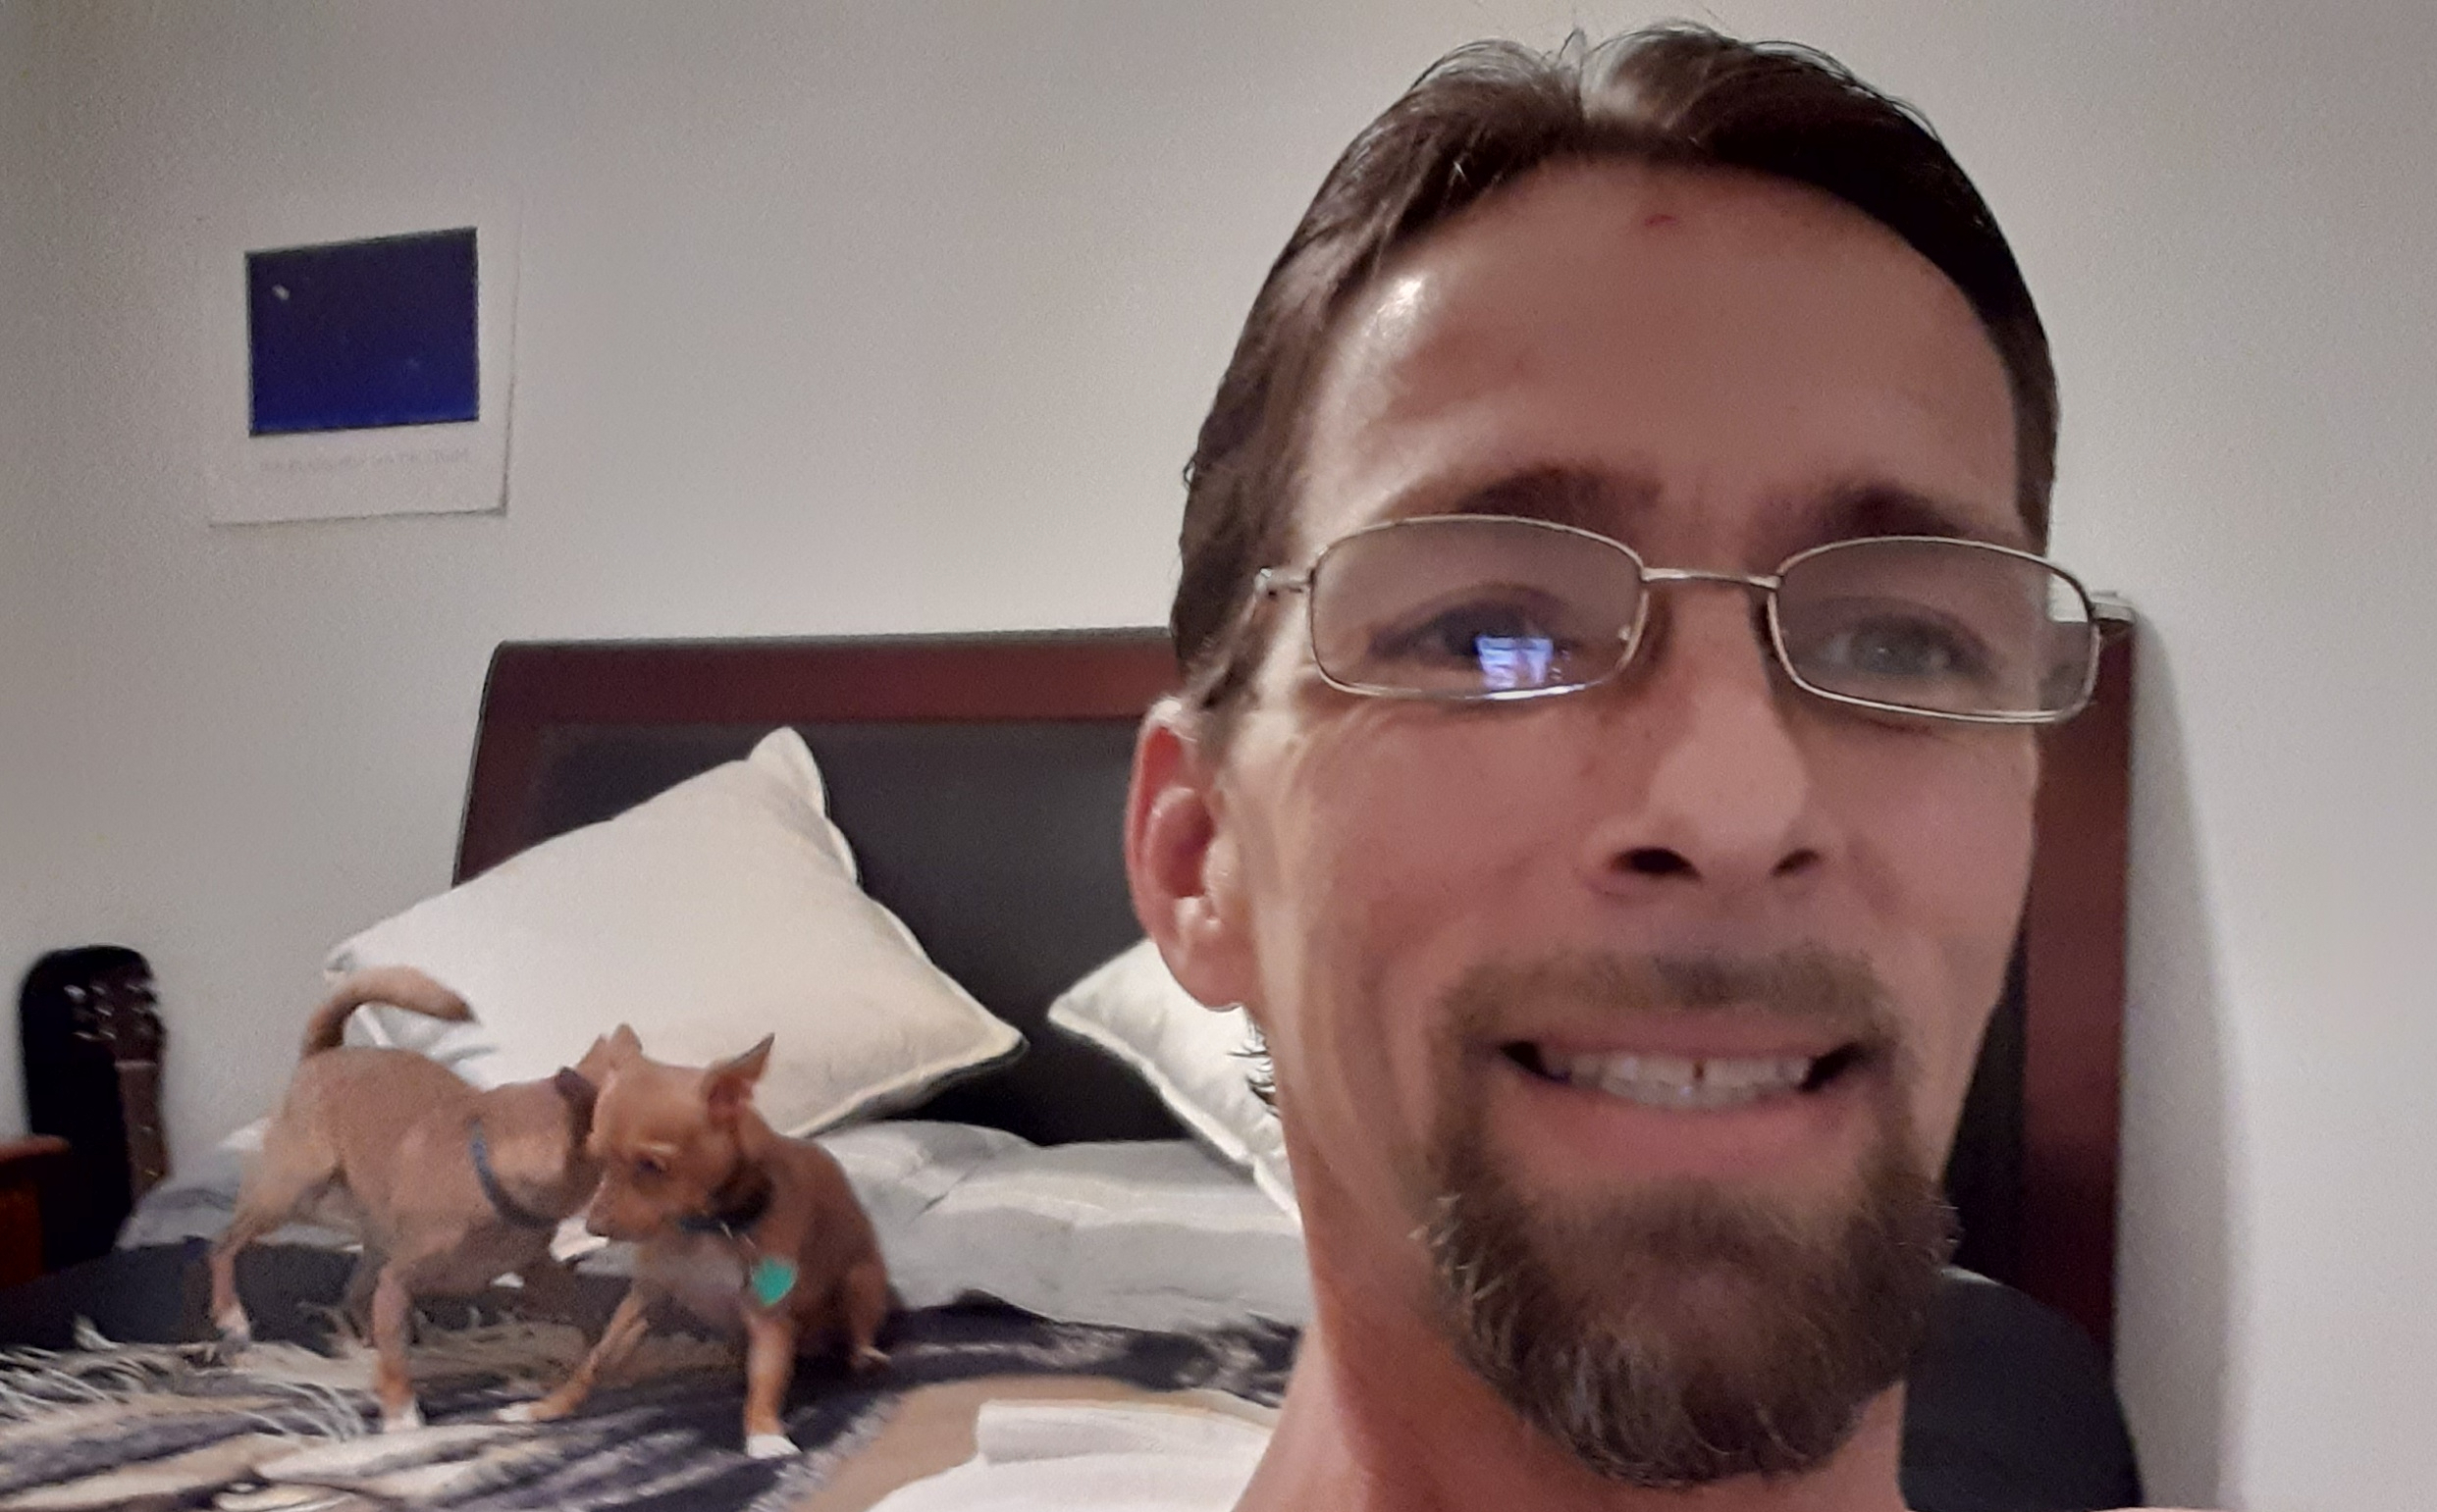 The Veteran, Tim, smiling with his own room with his two dogs